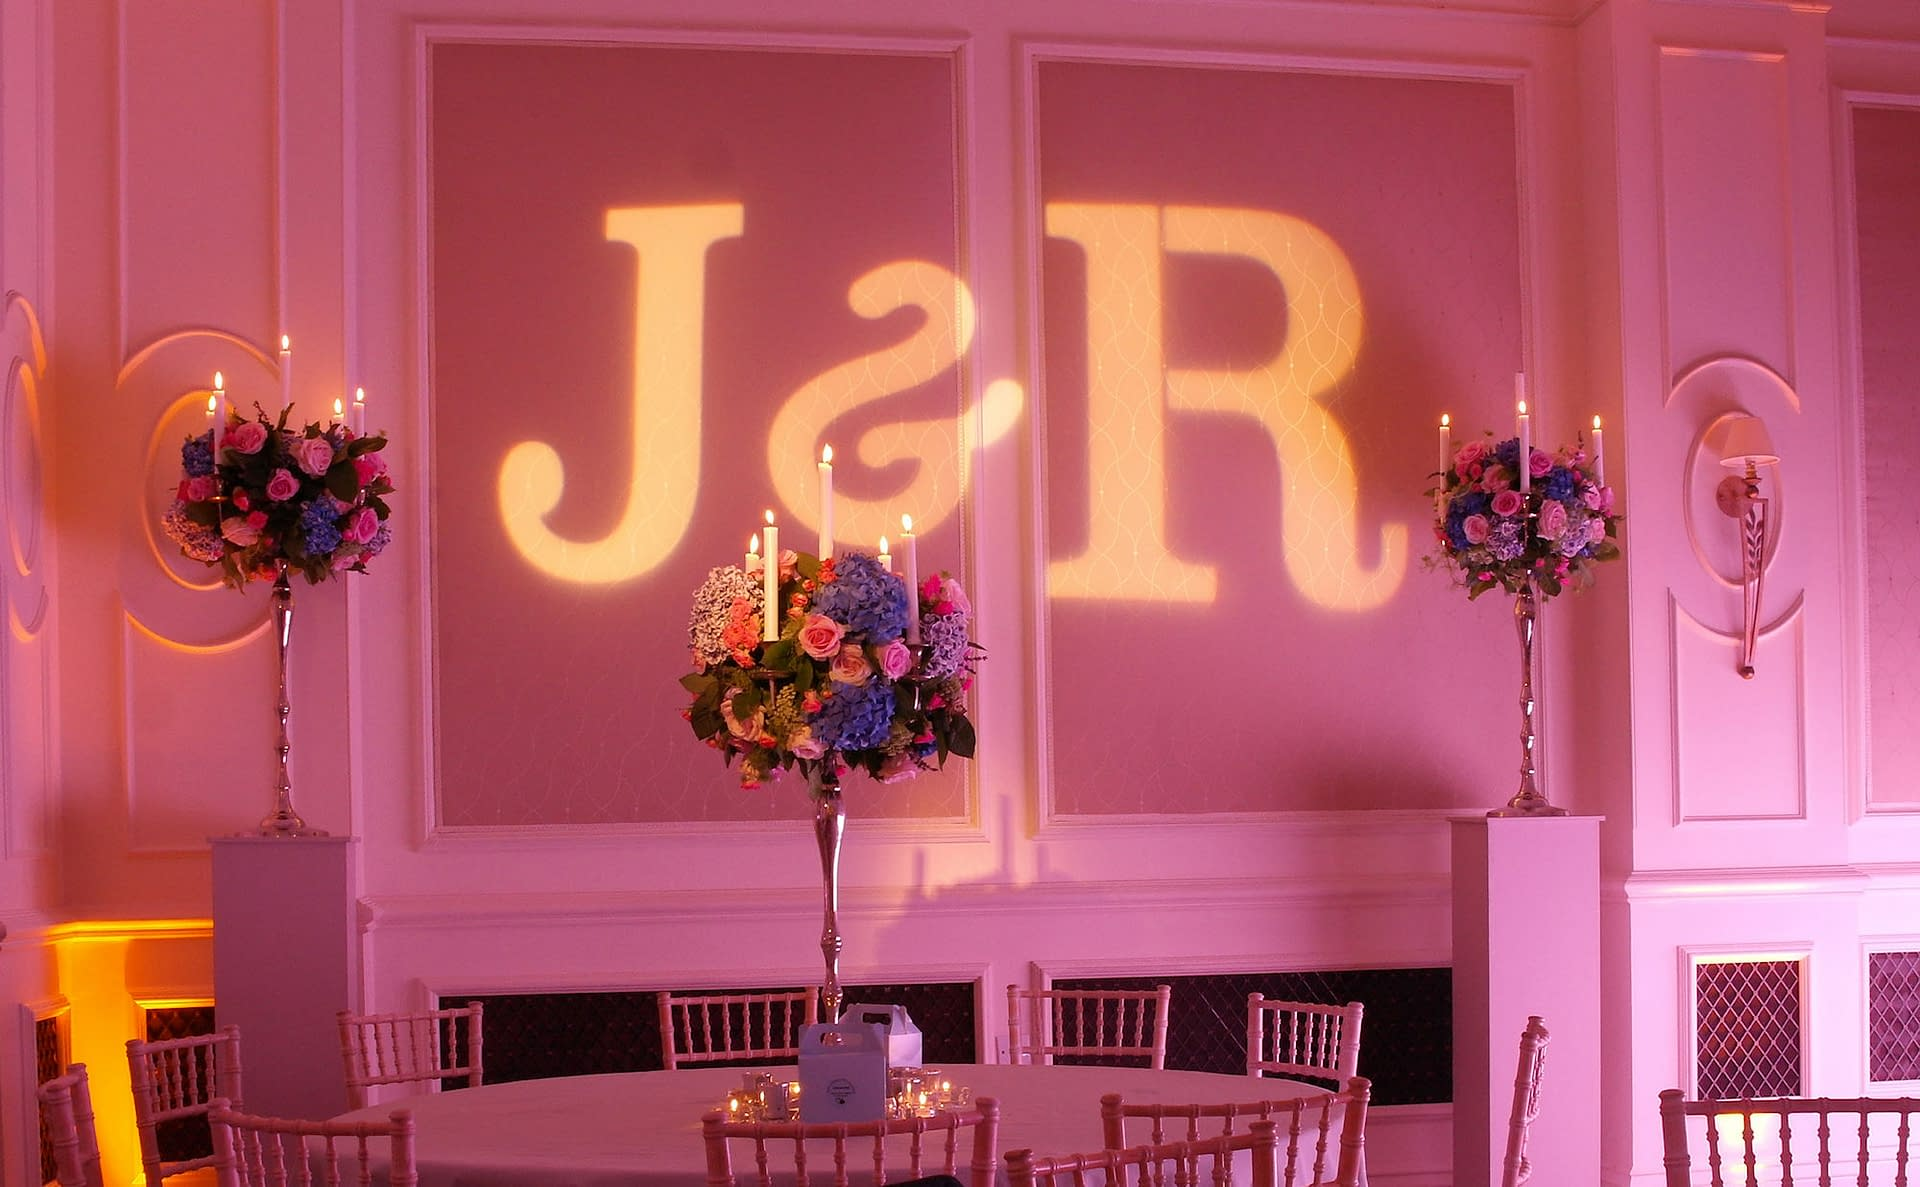 Mood lighting and wall projections at The Four Seasons Hook, UK wedding venue